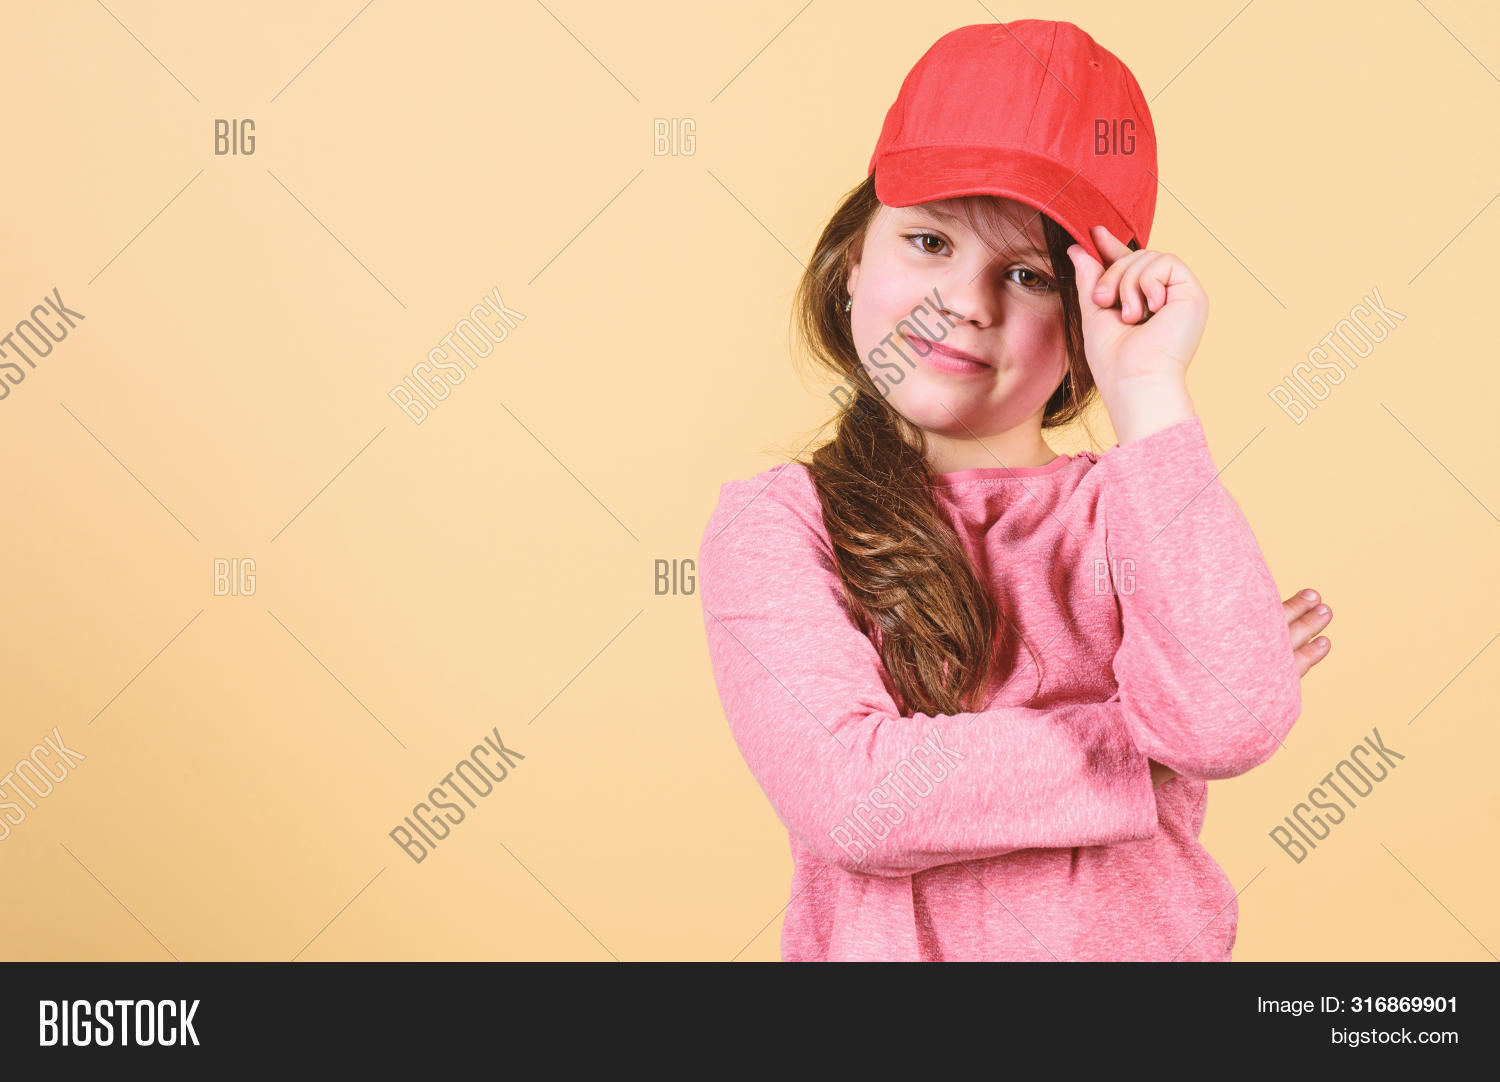 Cutie In Cap. Stylish Accessory. Kids Fashion. Feeling Confident With This Cap. Girl Cute Child Wear